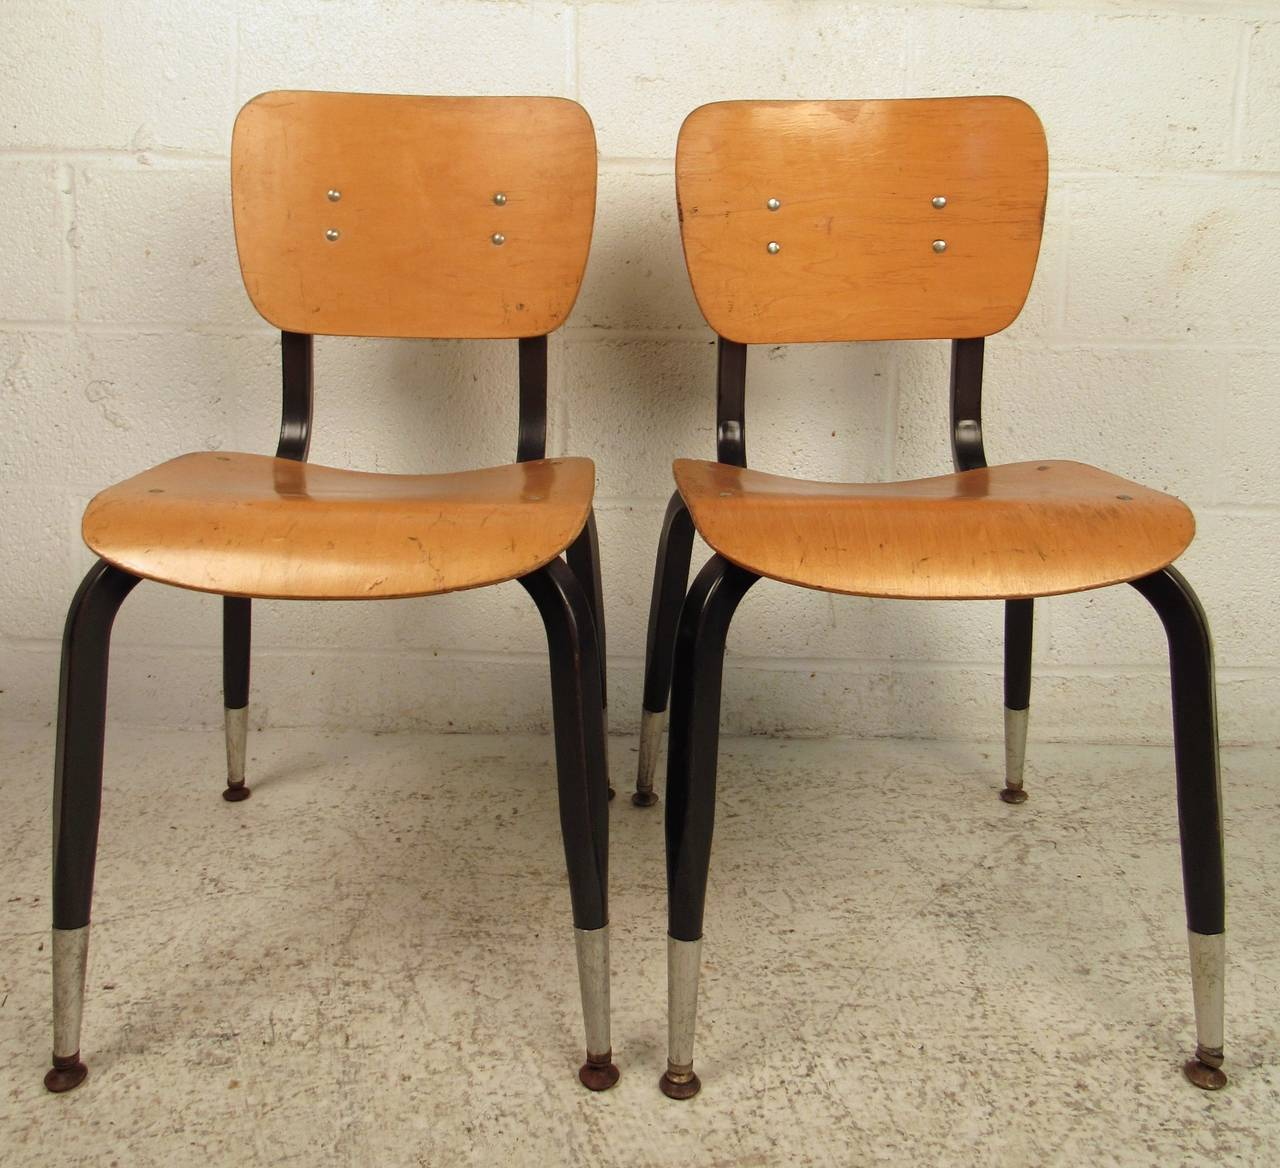 This set of ten bentwood chairs feature metal frames, tapered legs and comfortable design. Restoration recommended, five of the chairs have painted backs, the other maintain the original finish. Please confirm item location (NY or NJ).